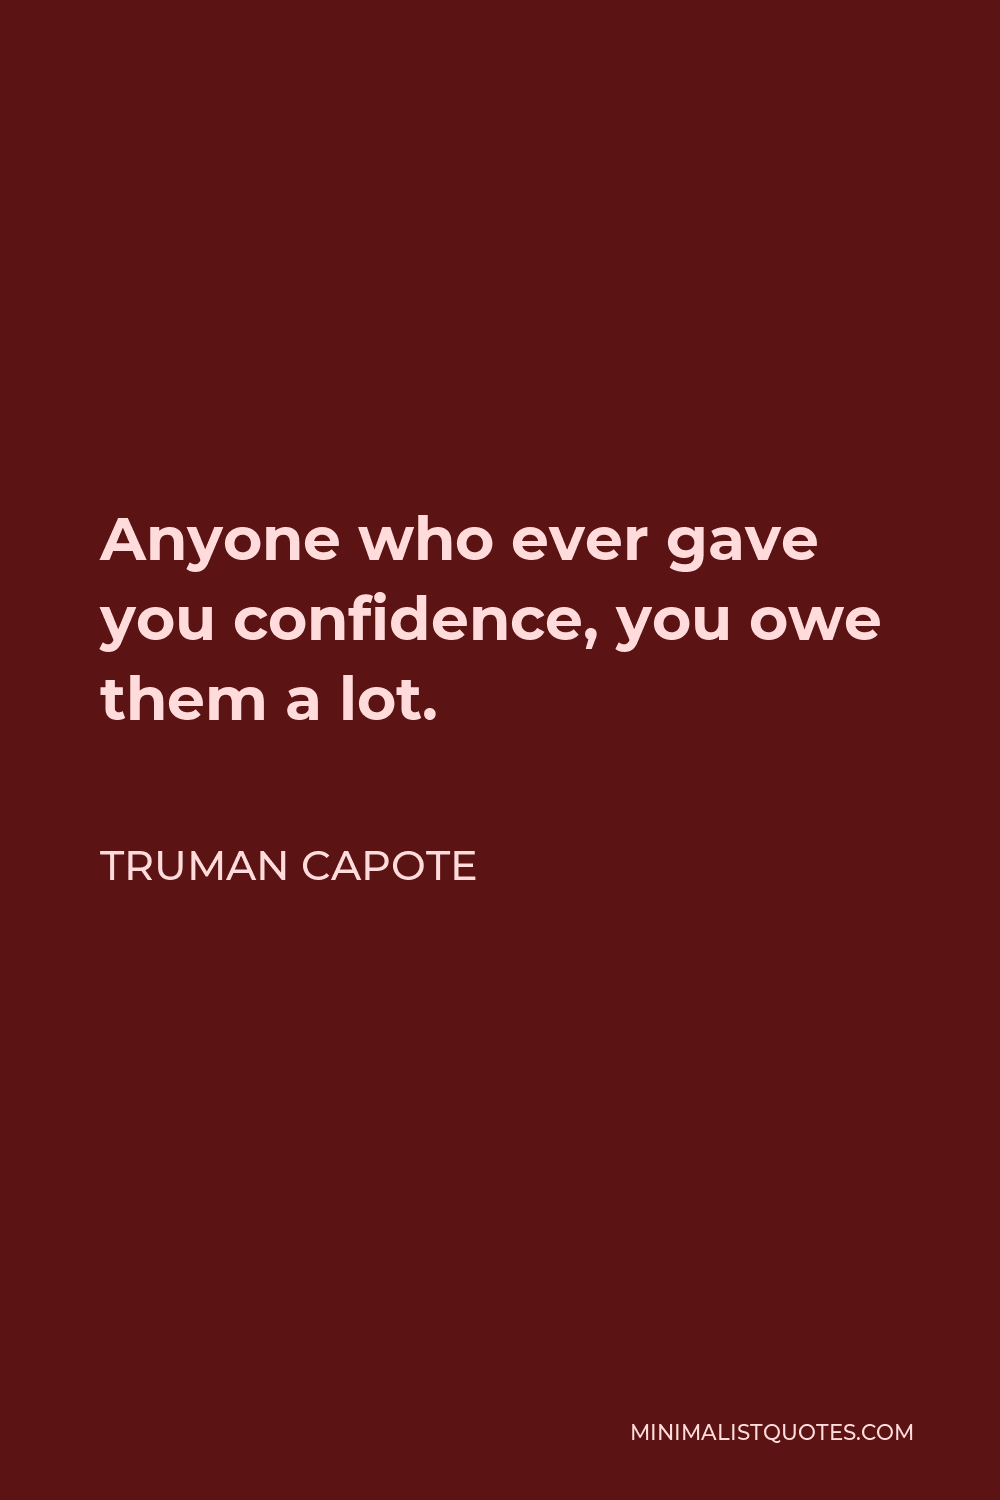 Truman Capote Quote - Anyone who ever gave you confidence, you owe them a lot.